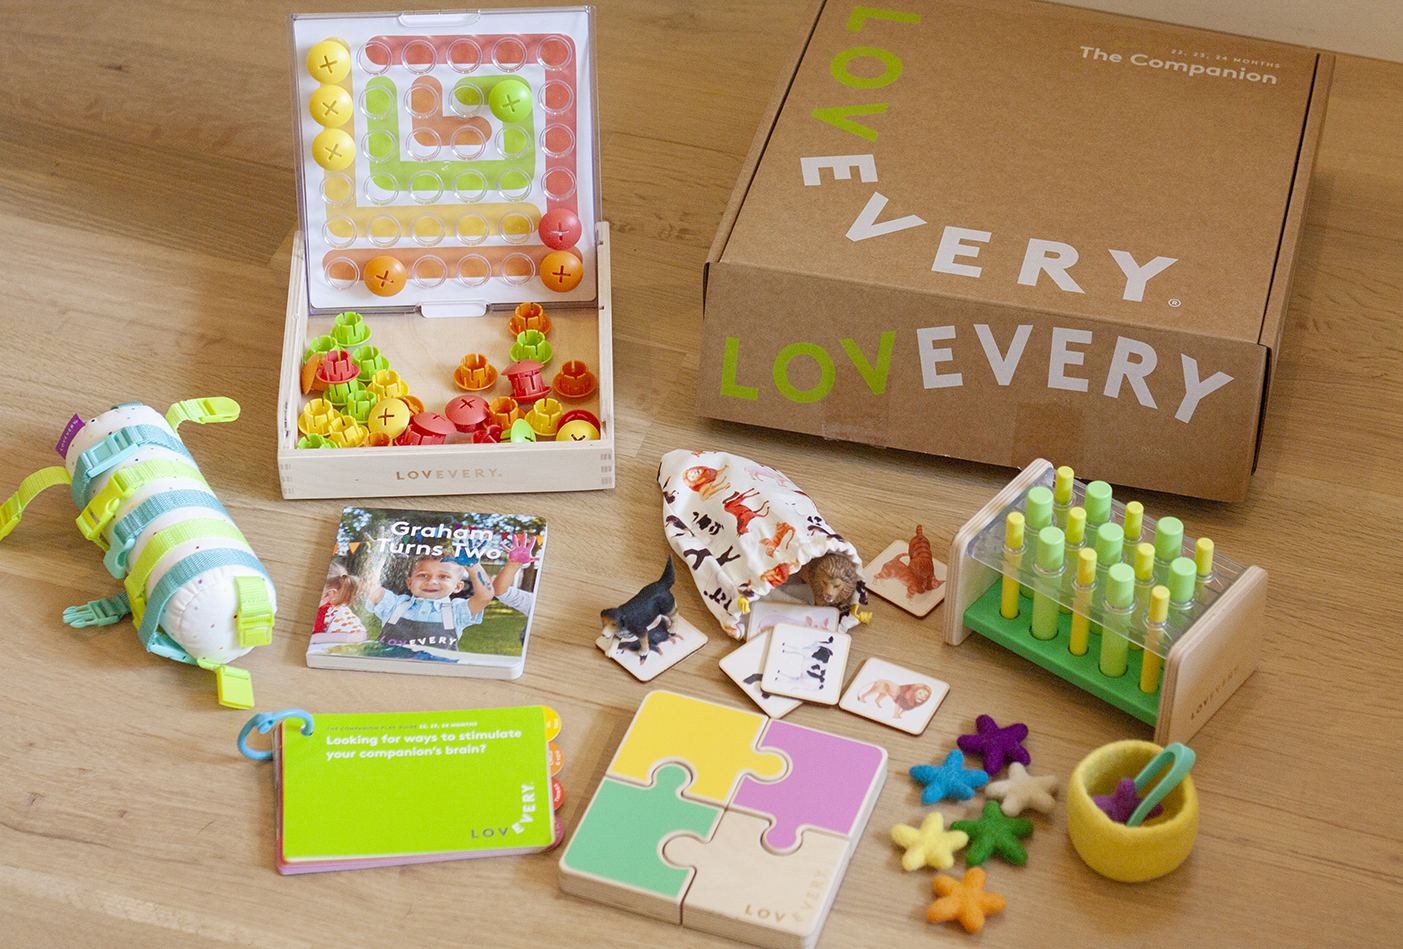 What's inside The Companion Play Kit by Lovevery